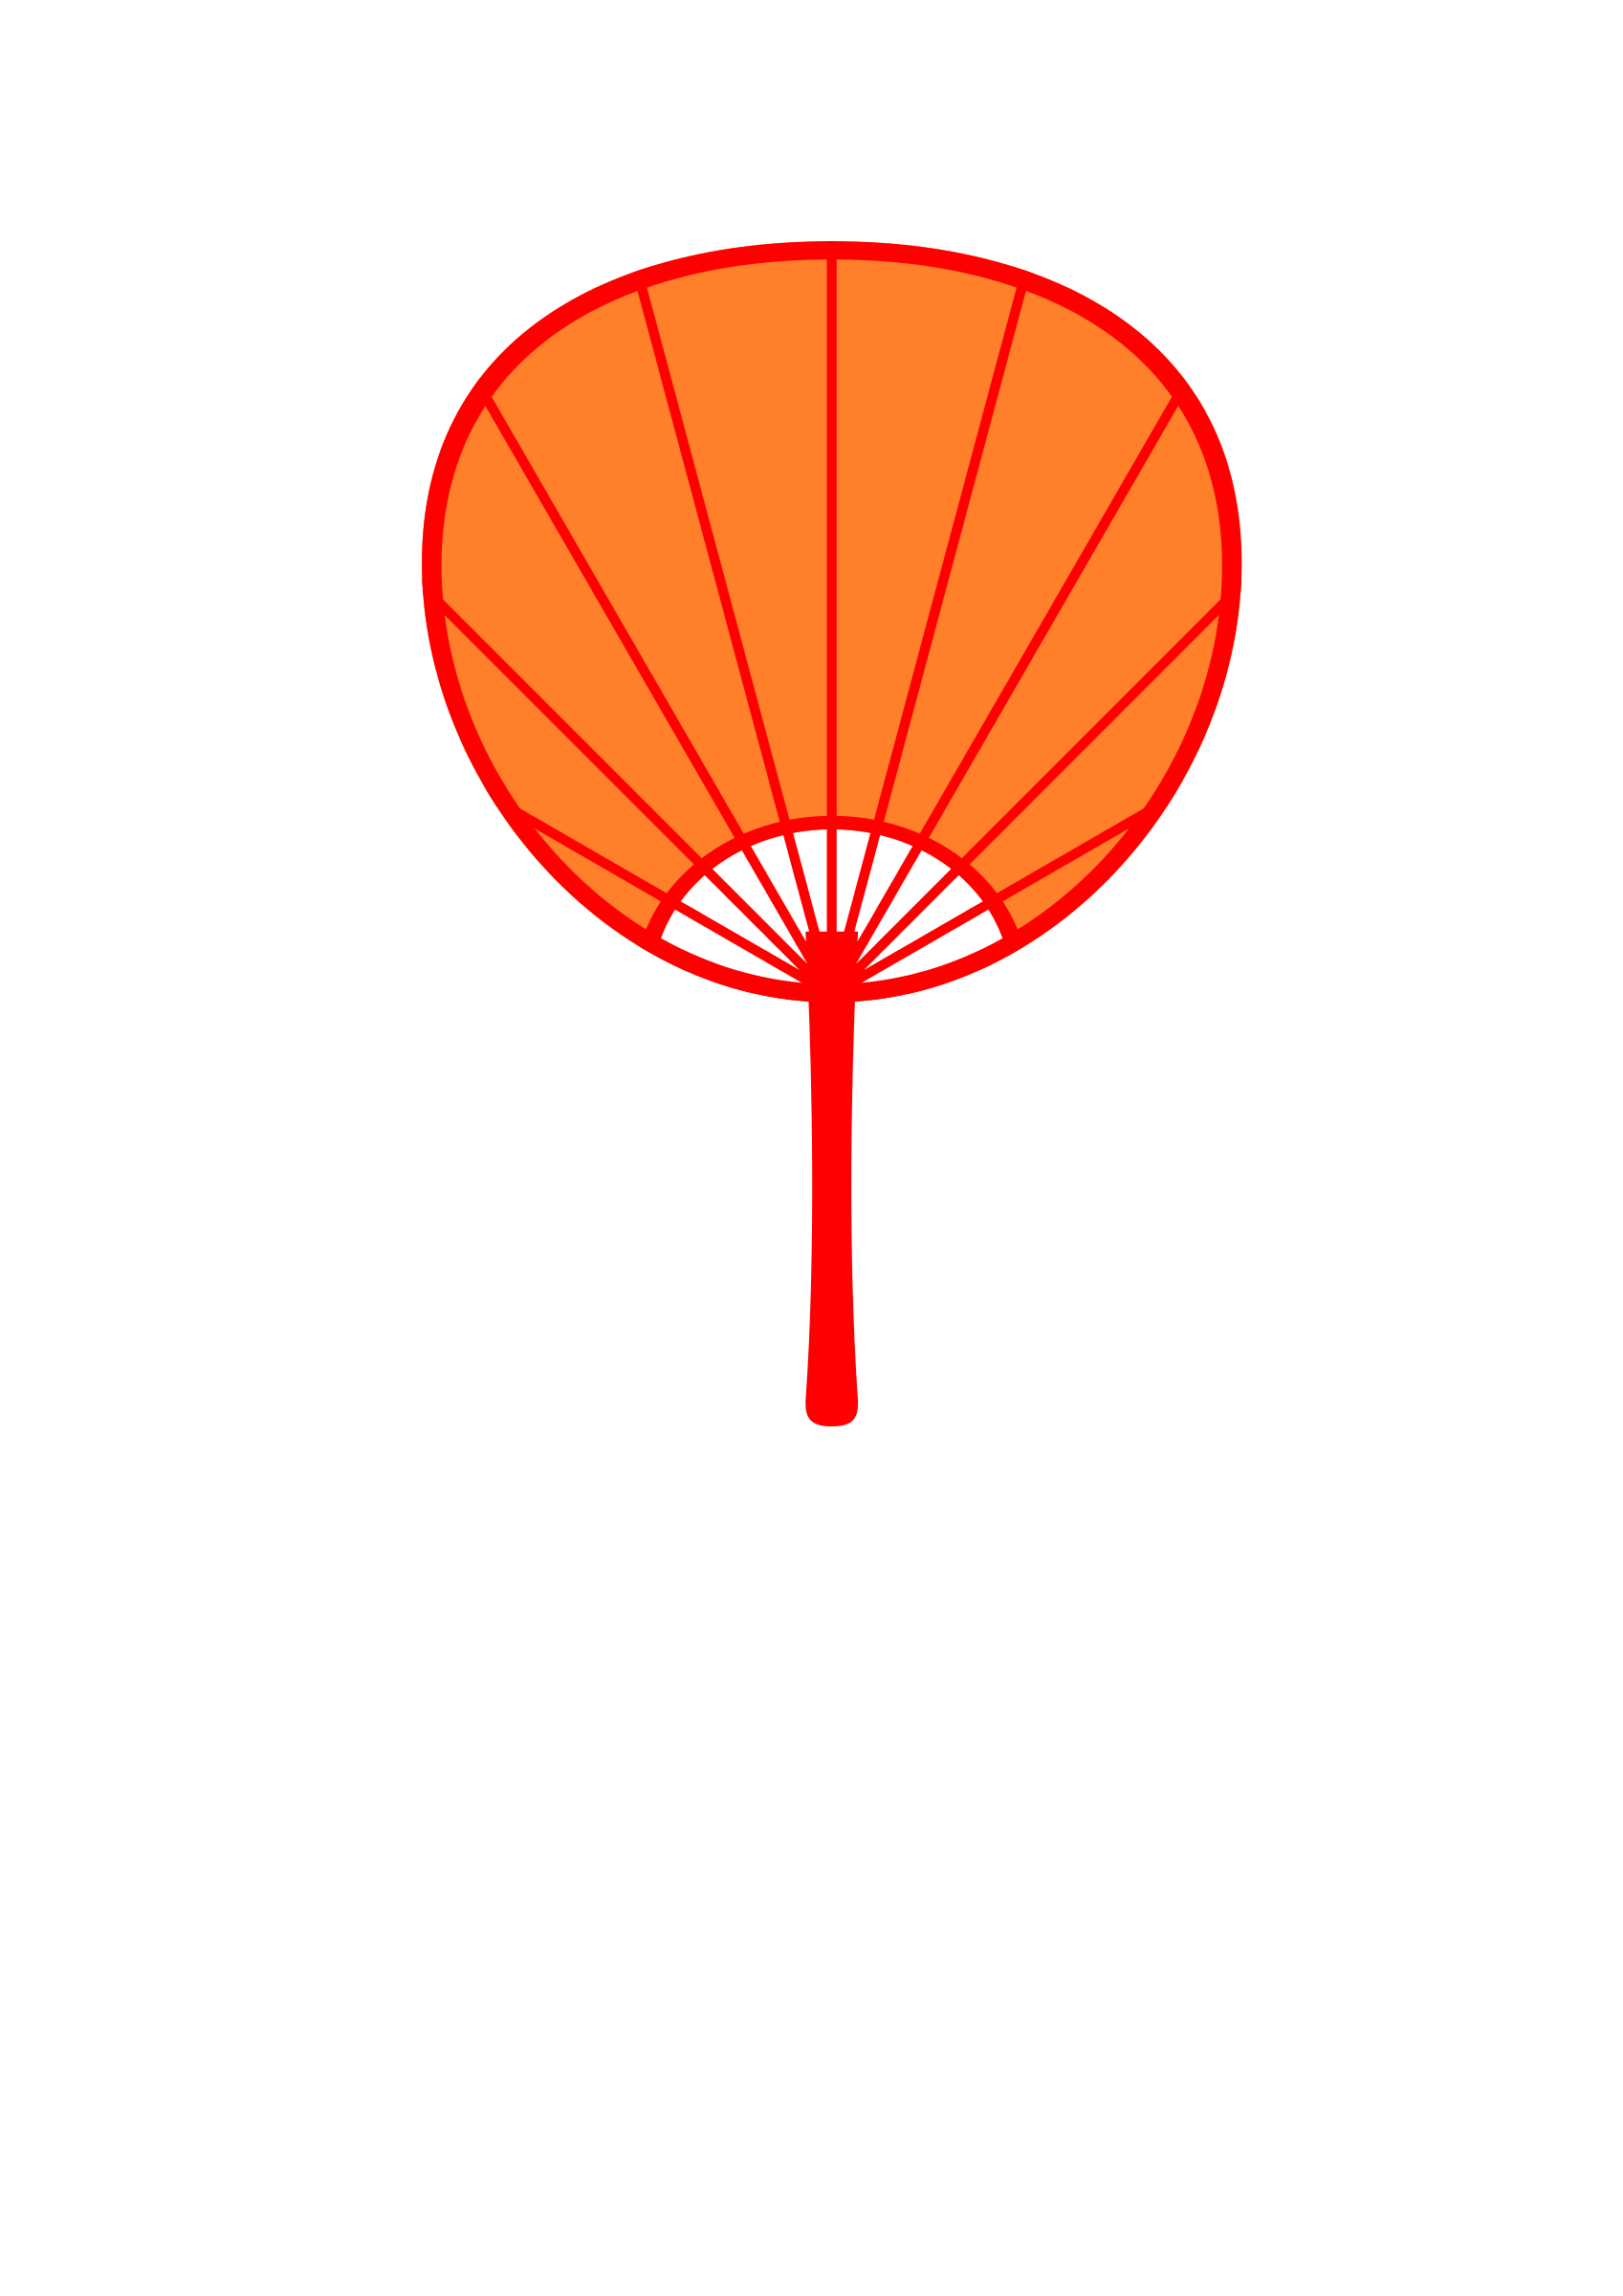 Japanese at getdrawings com. Fan clipart fan japan